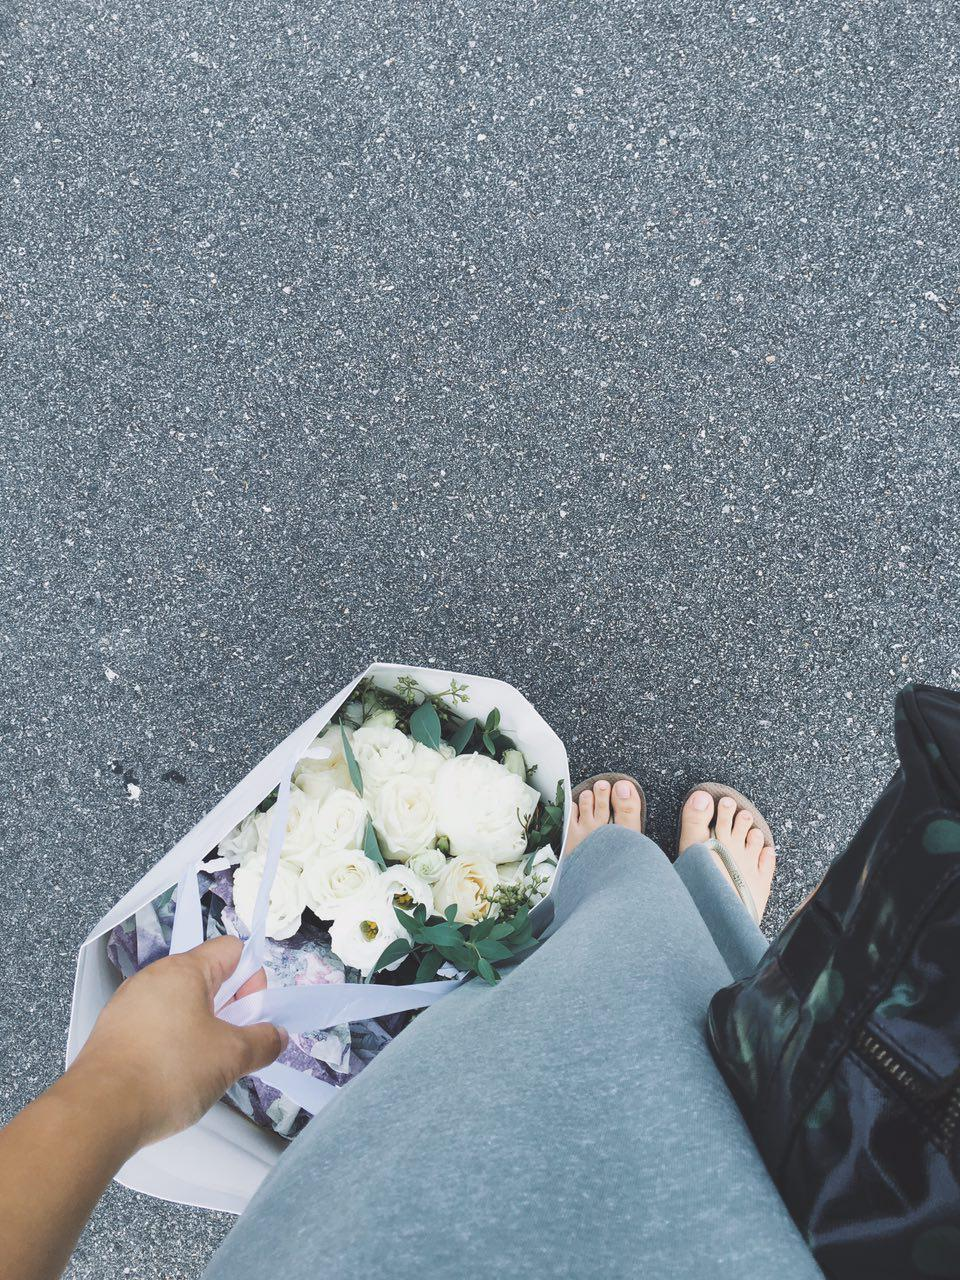 My pre-pre-wedding shoot #ootd with flip flops on and the flower bouquet still nicely packed in the paper bag.